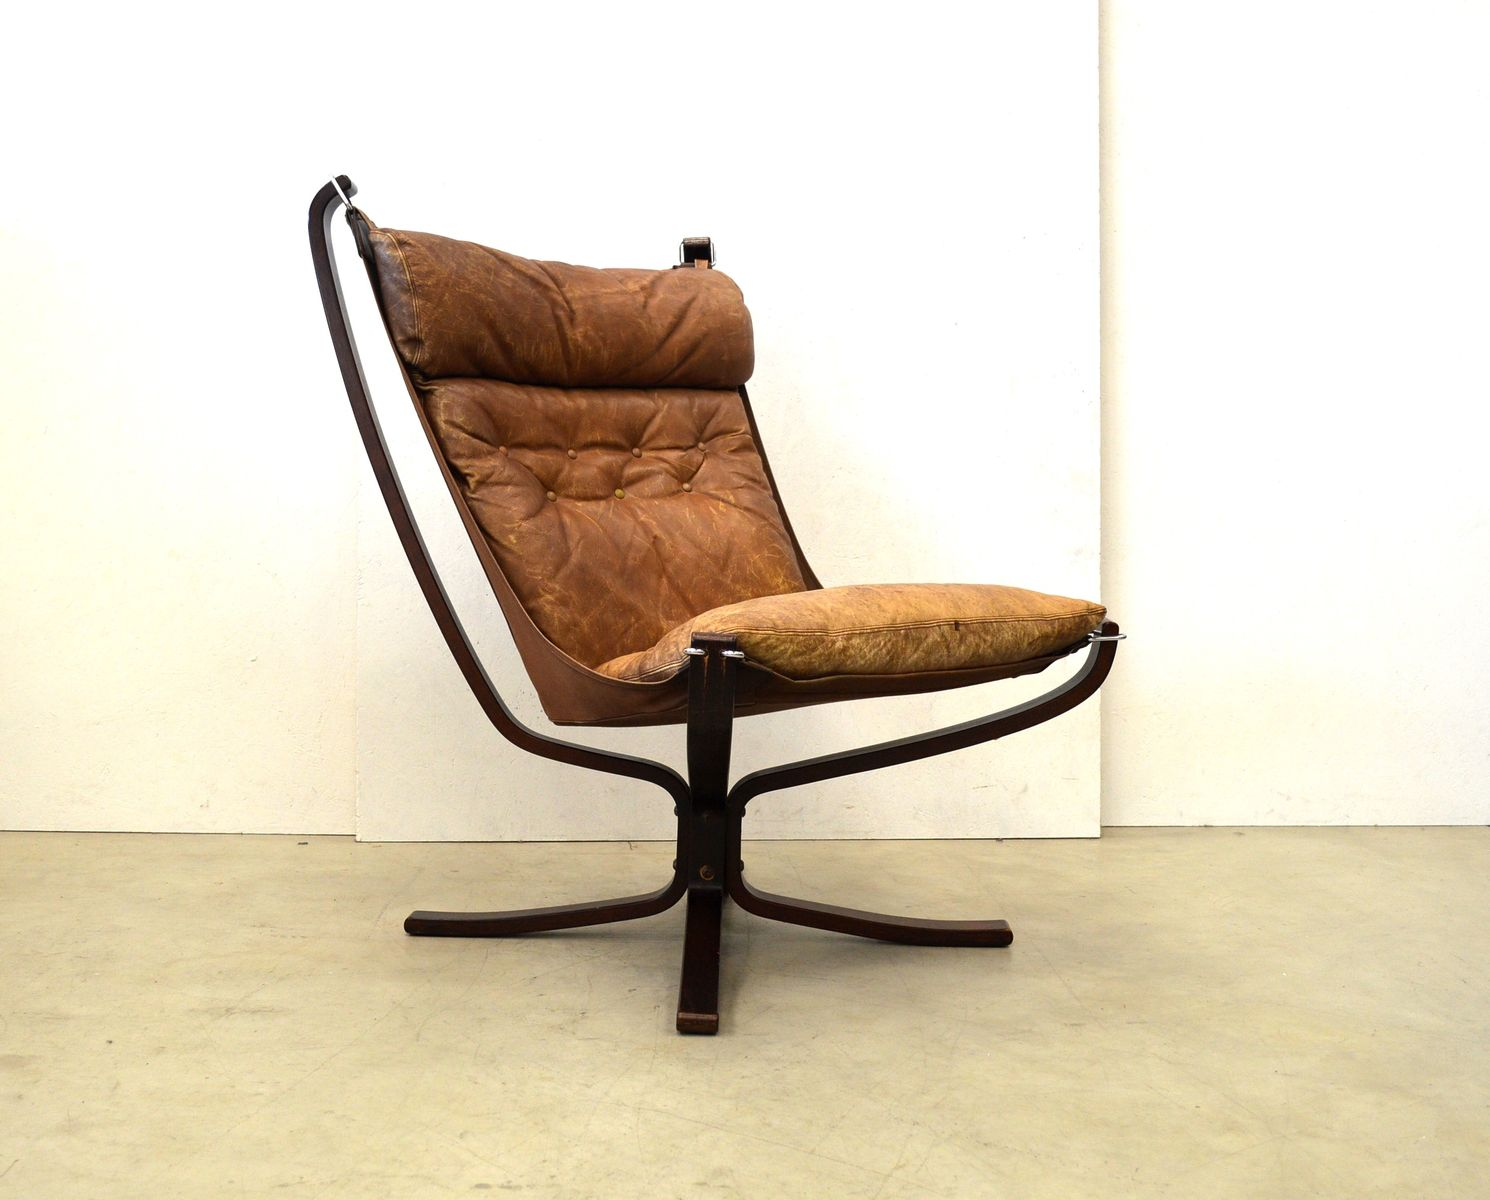 Norwegian Falcon Lounge Chair by Sigurd Ressell for Vatne Mobler, 1974 for sale at Pamono